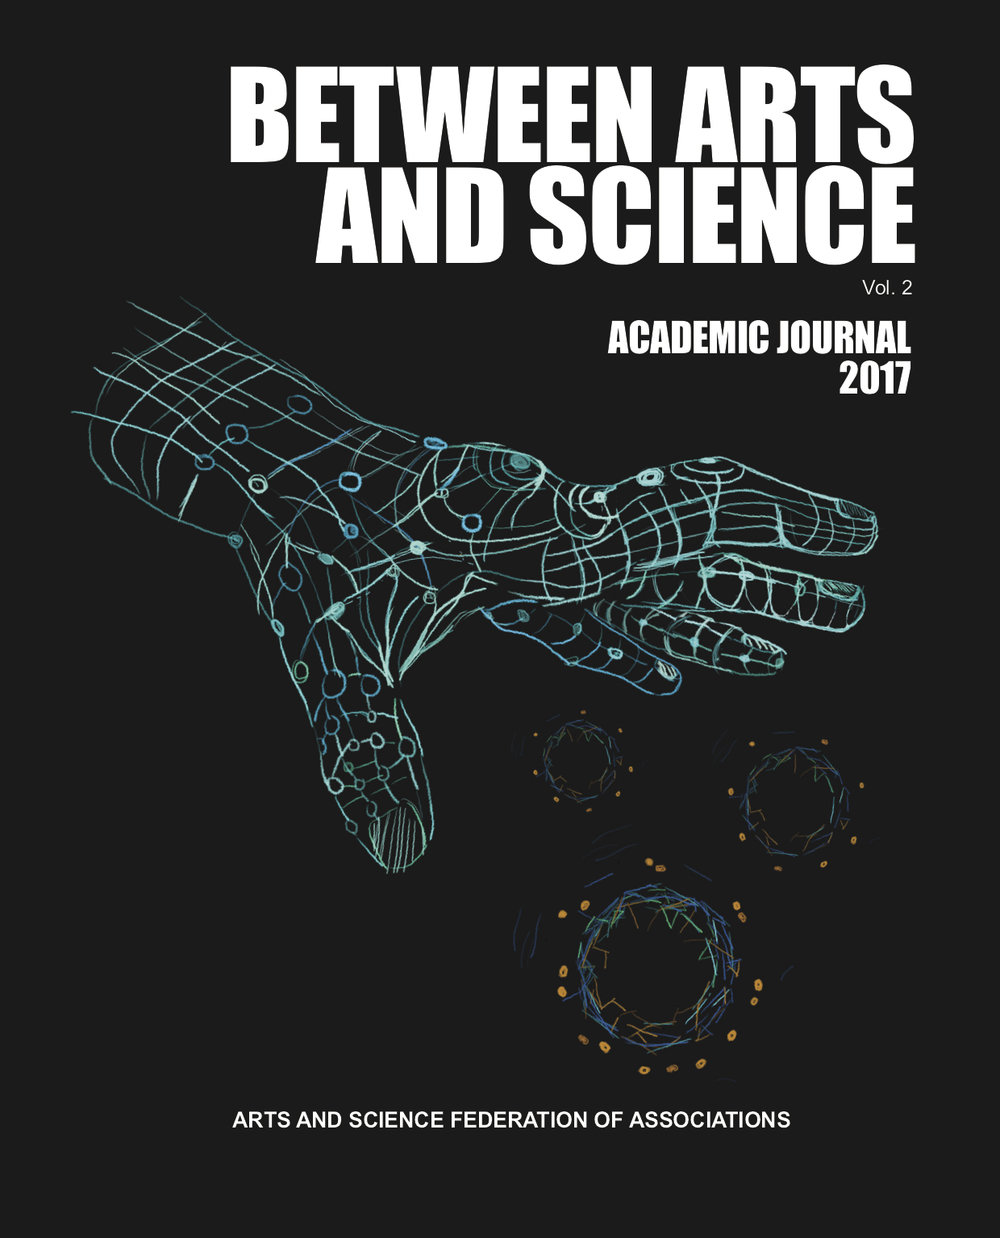 Academic Journal - Between Arts and Science is a multidisciplinary journal, founded in 2015-2016, whose main purpose is to foster academic collaboration and intrigue between the departments and our students.The journal is edited and designed by Concordia undergraduate students within the Faculty of Arts and Science. It is published each year in May.